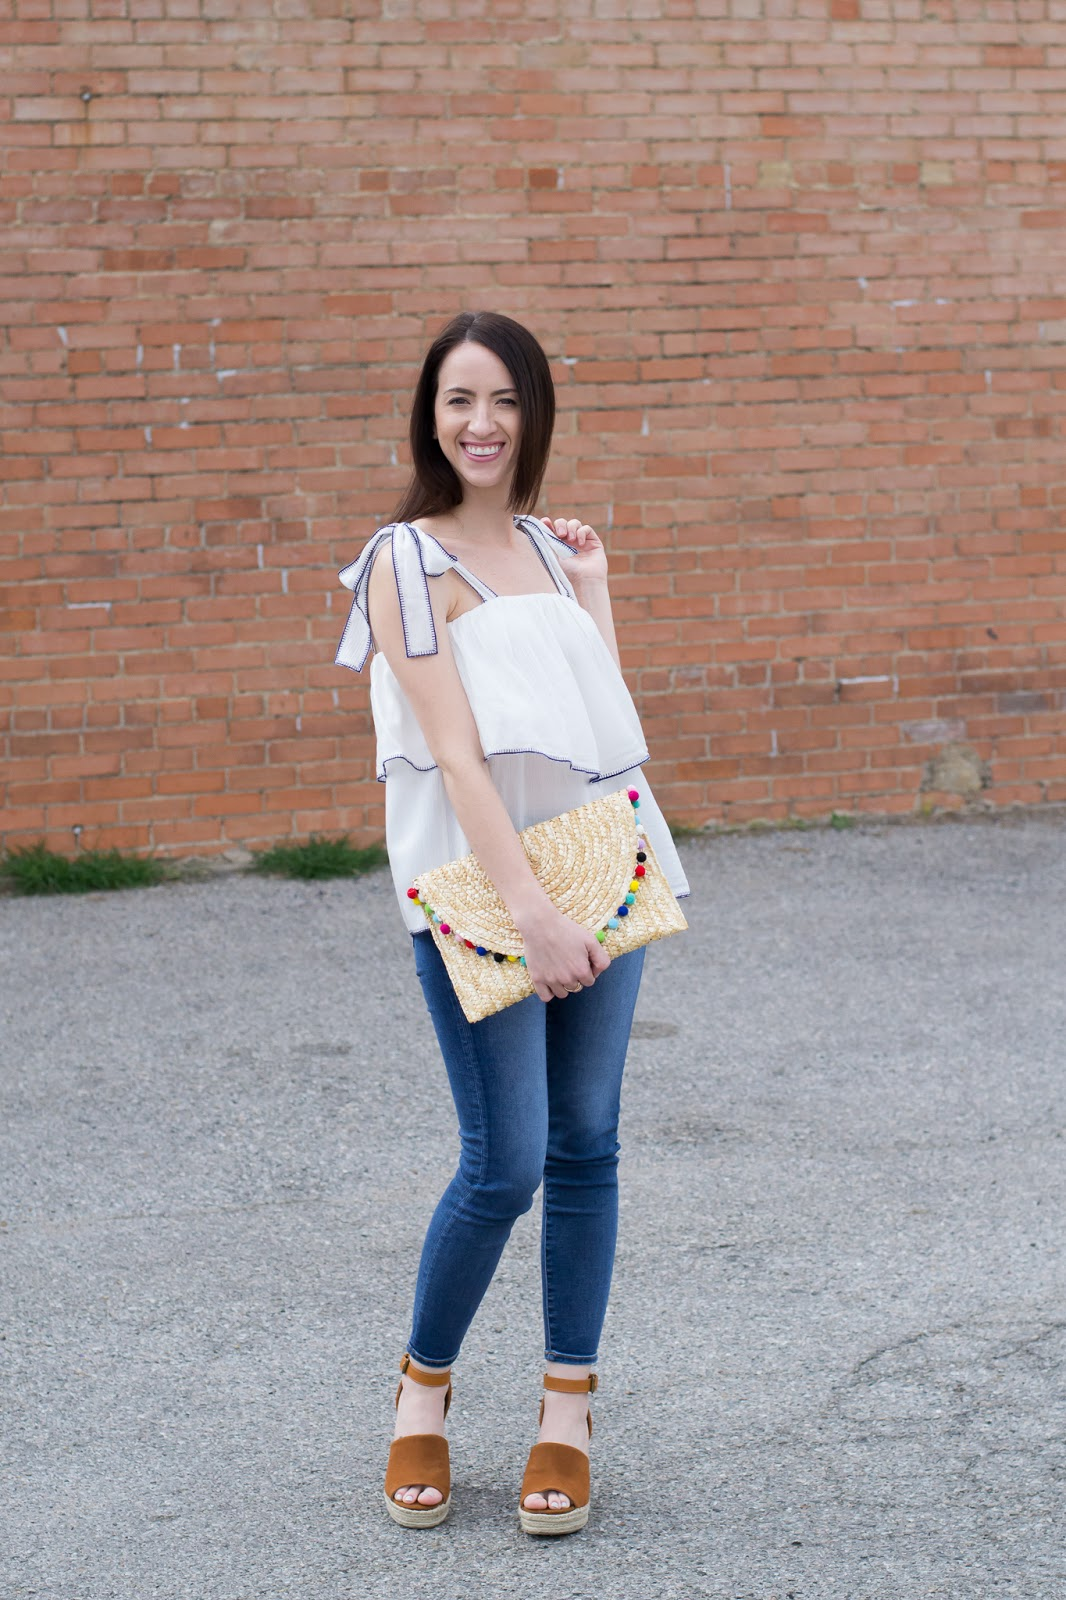 Summer style in white ruffle top with bow ties and straw pom pom clutch